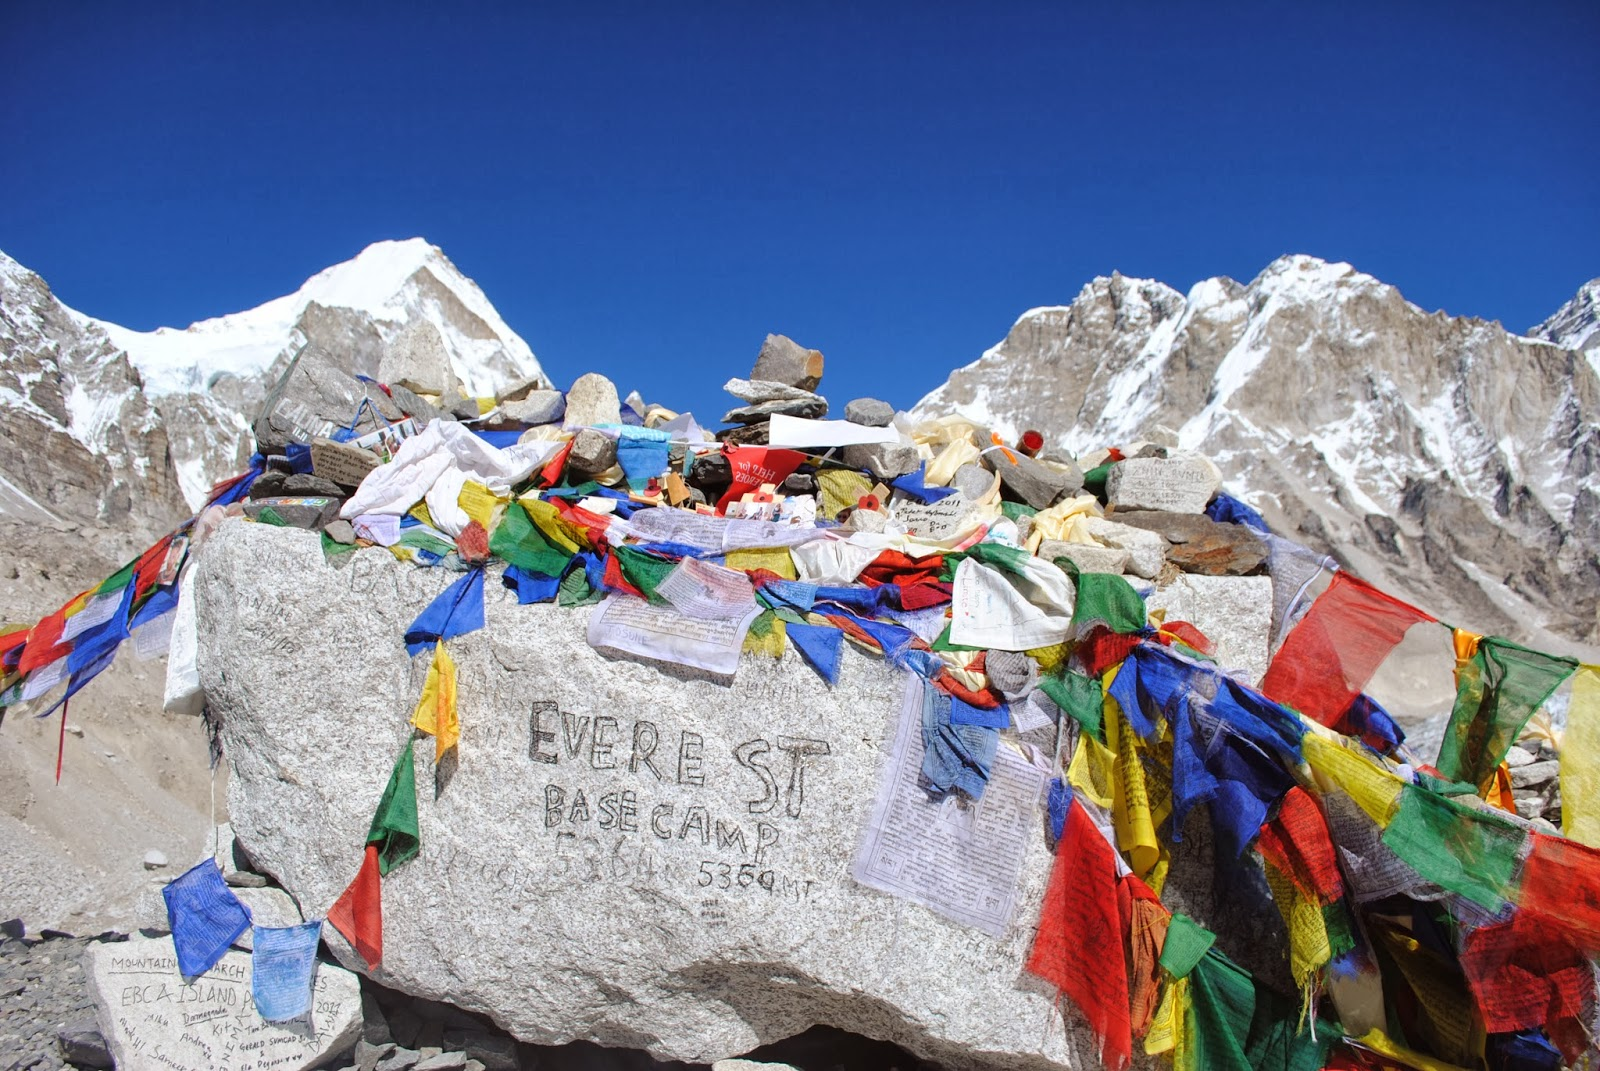 everest panorama trek, everest panorama trekking, everest panorama treks, everest view trekking, everest panorama trekking itinerary, everest panorama trekking cost, everest panorama trekking guide